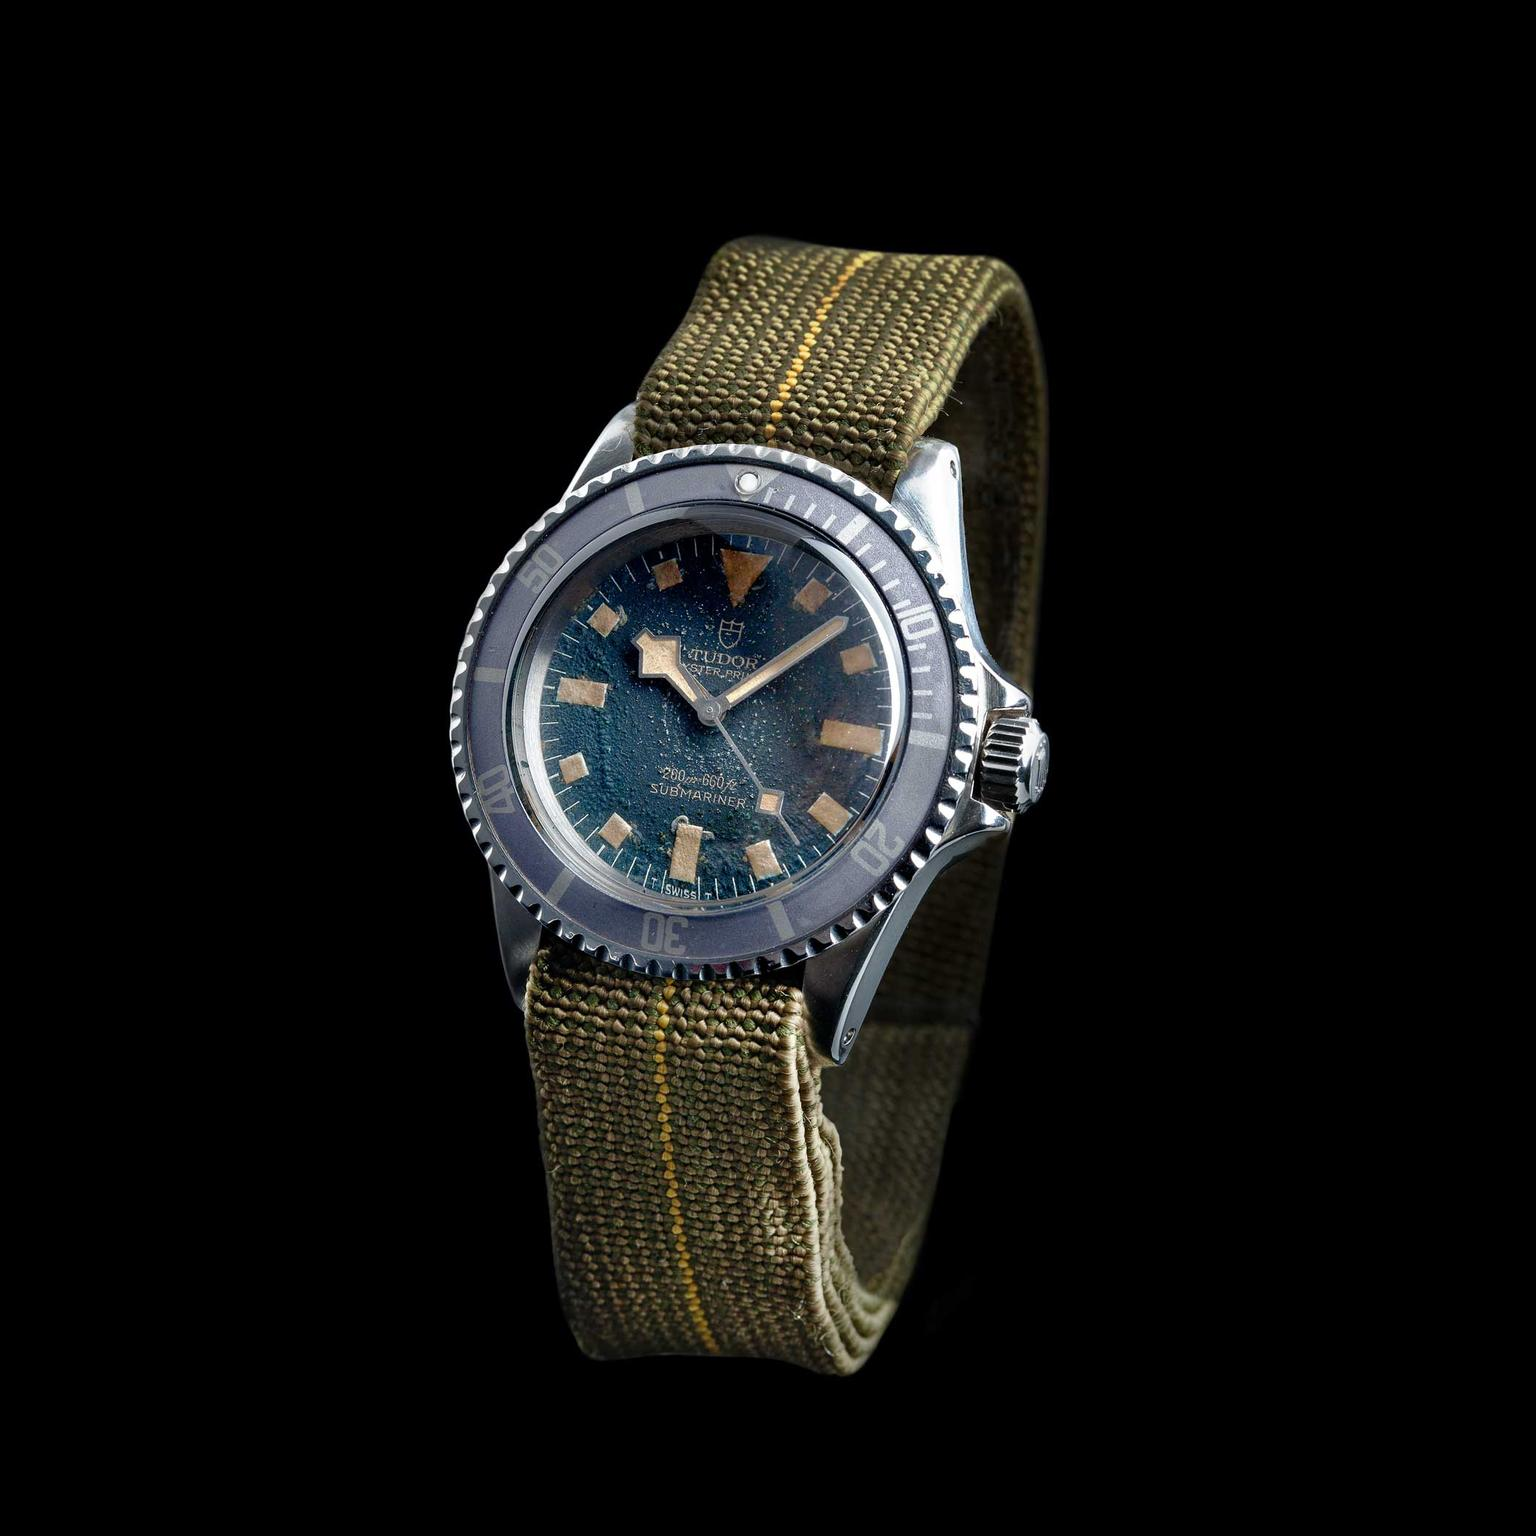 Tudor 1977 Oyster Prince Submariner Marine Nationale watch